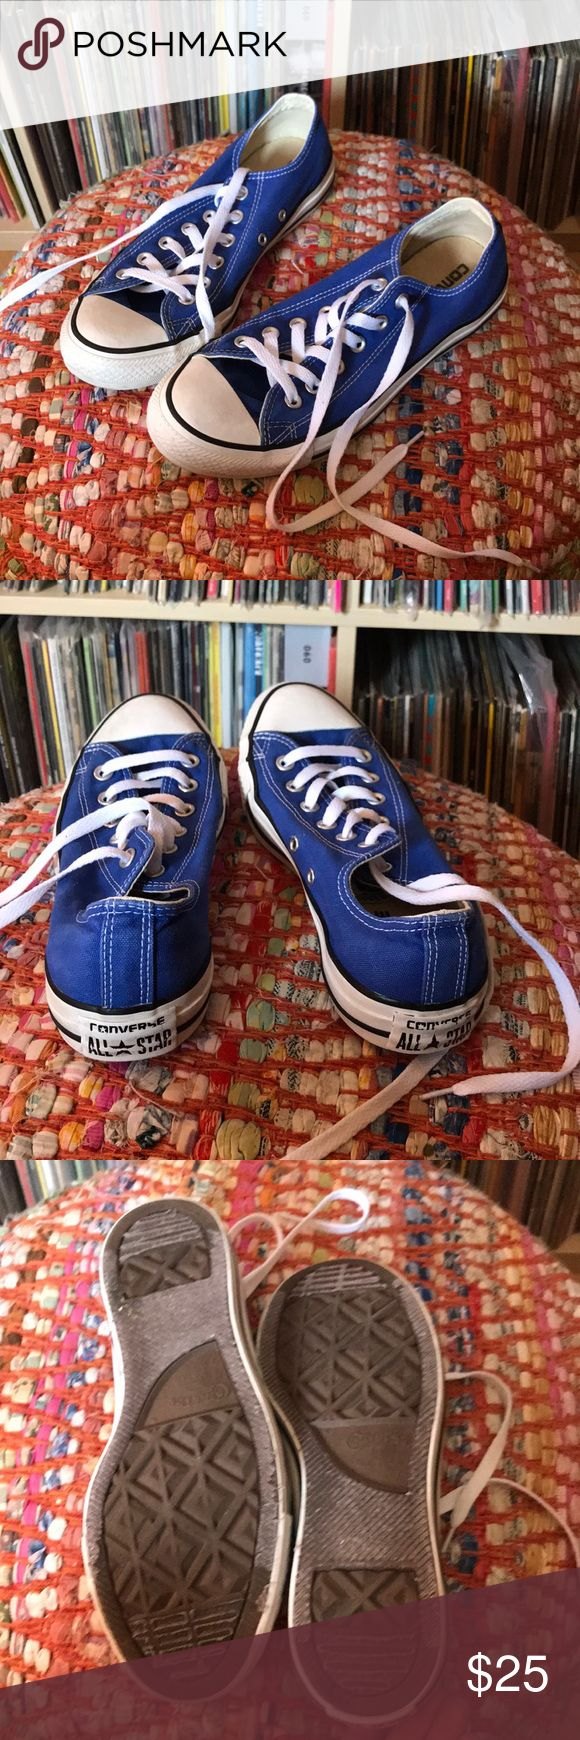 Used — Royal Blue Chucks Men's 7 Women's 9 Euro 40 Used blue Chucks Converse Shoes Sneakers